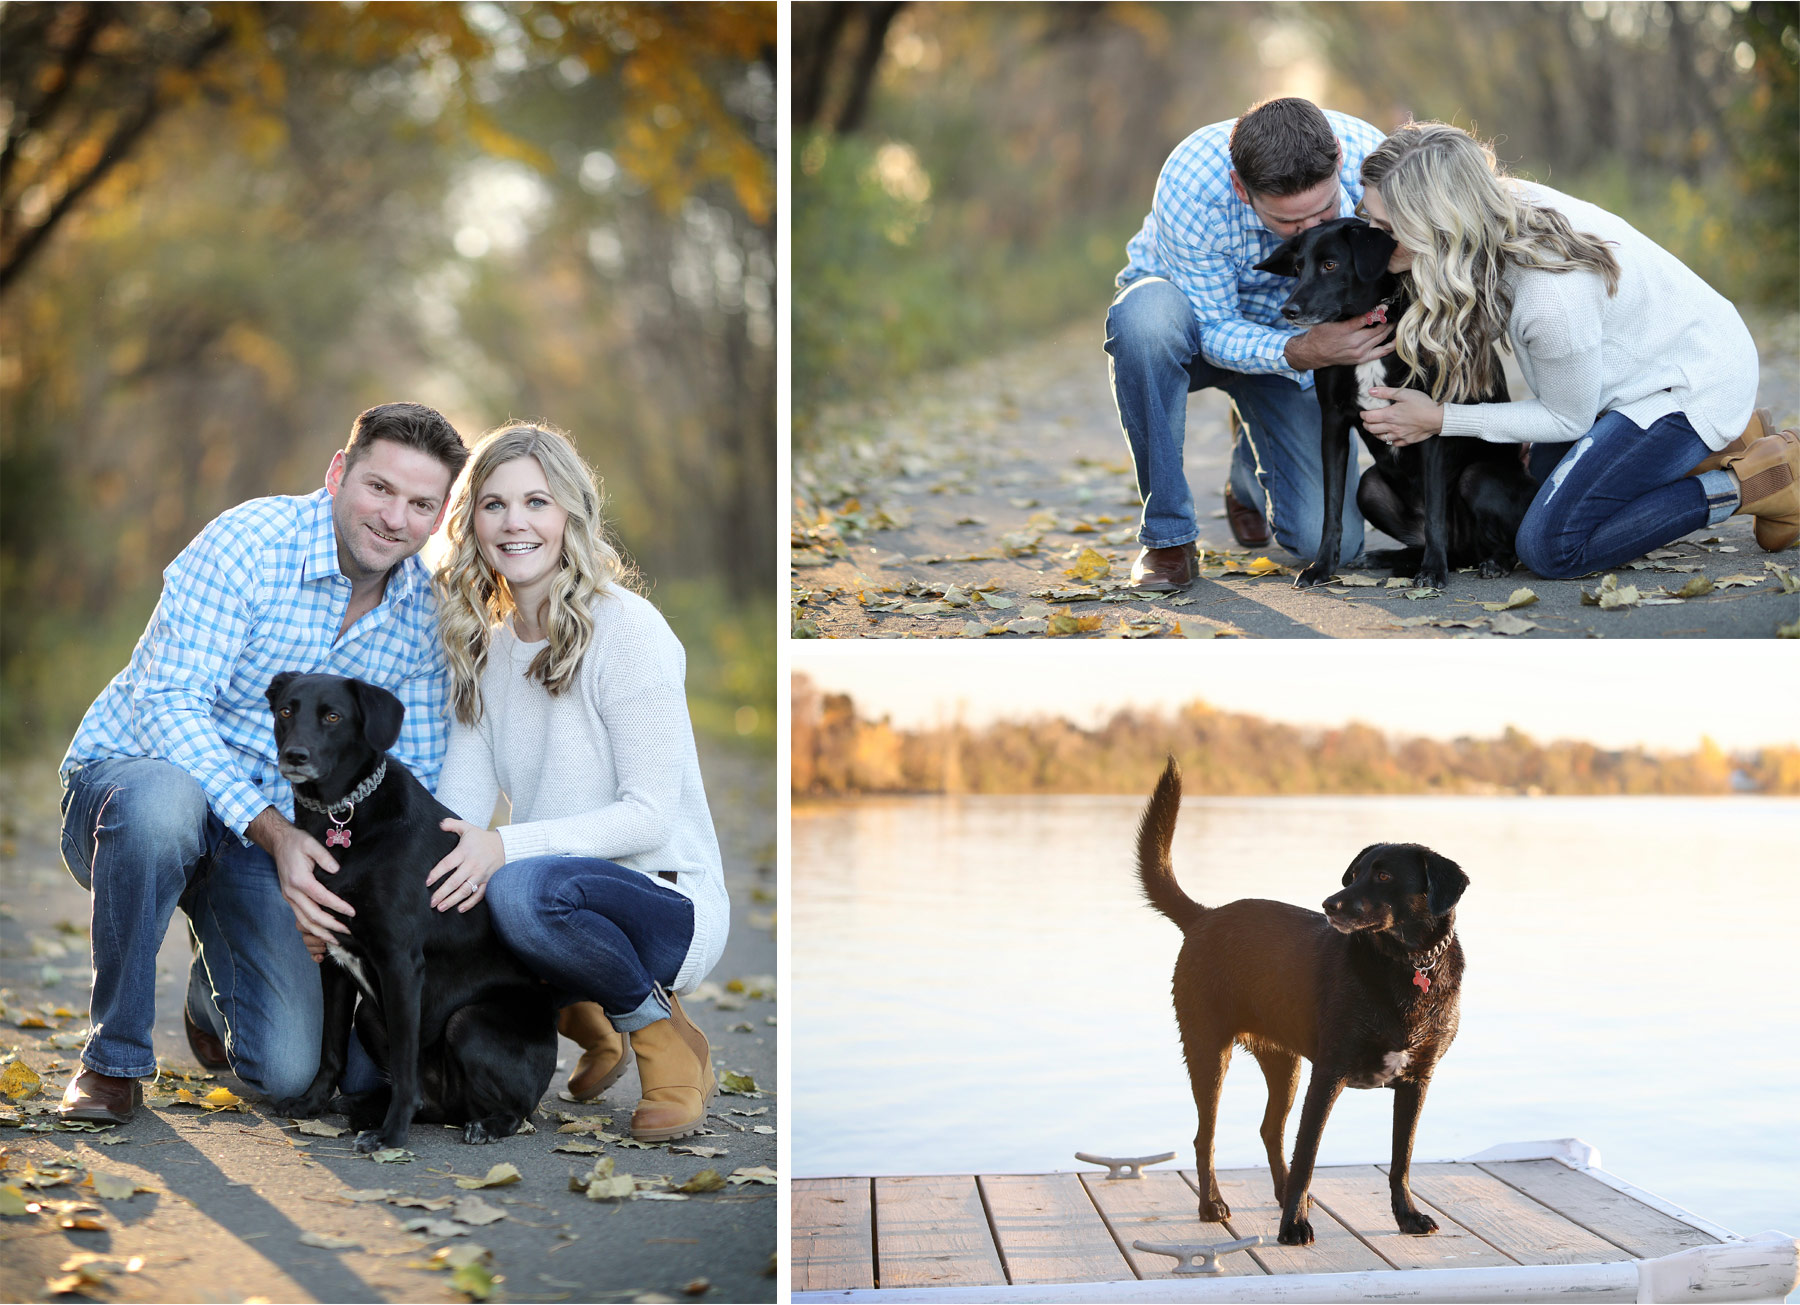 11-Vick-Photography-Destination-Engagement-Session-Autumn-Fall-Leafs-Dog-Katie-and-Bob.jpg